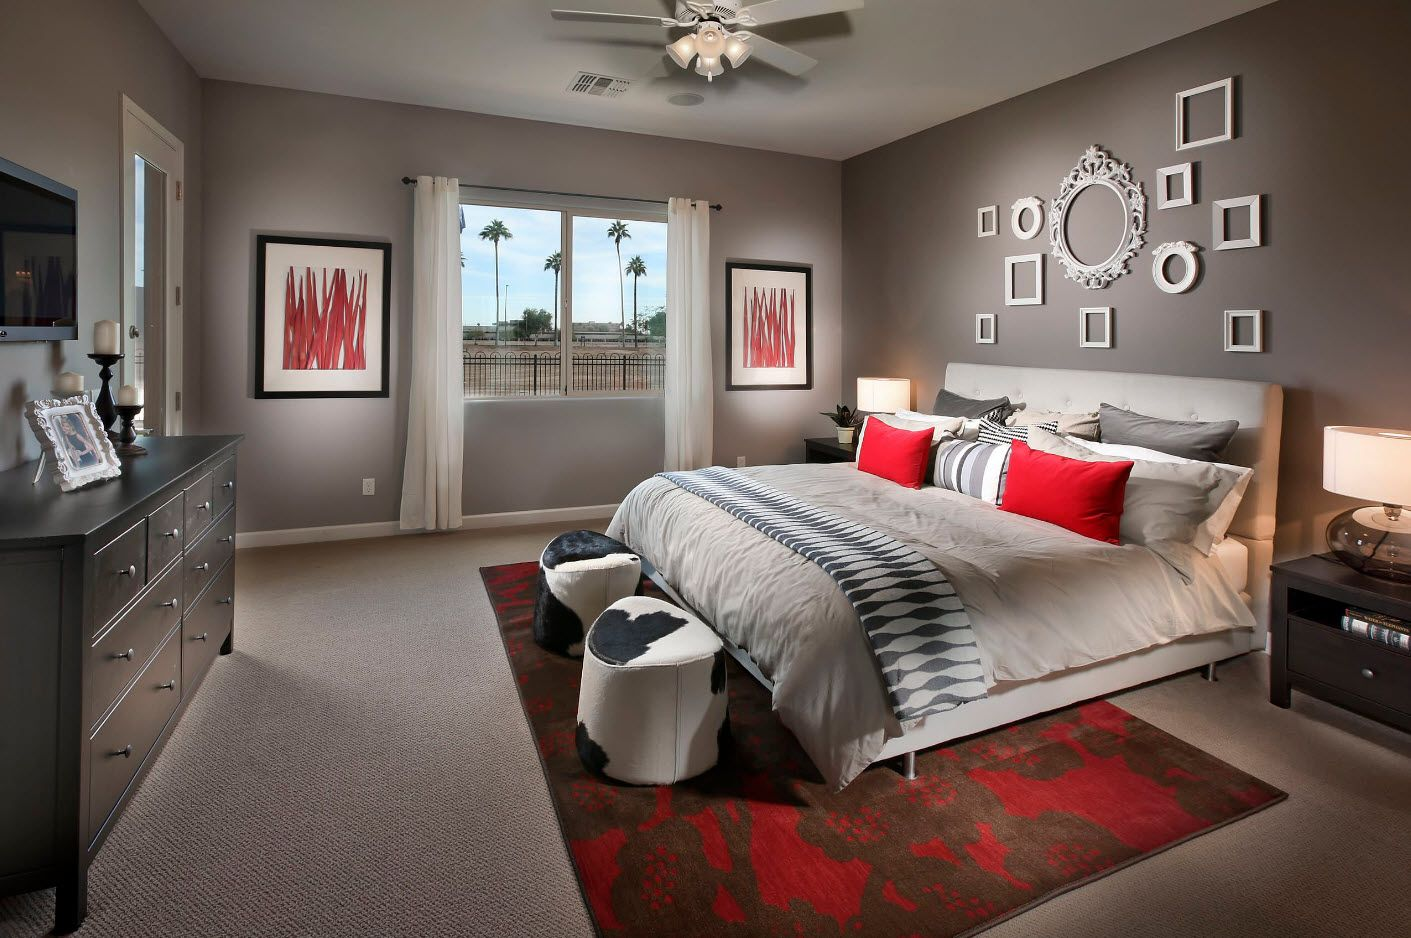 Red accents of pillows in the modern large bedroom